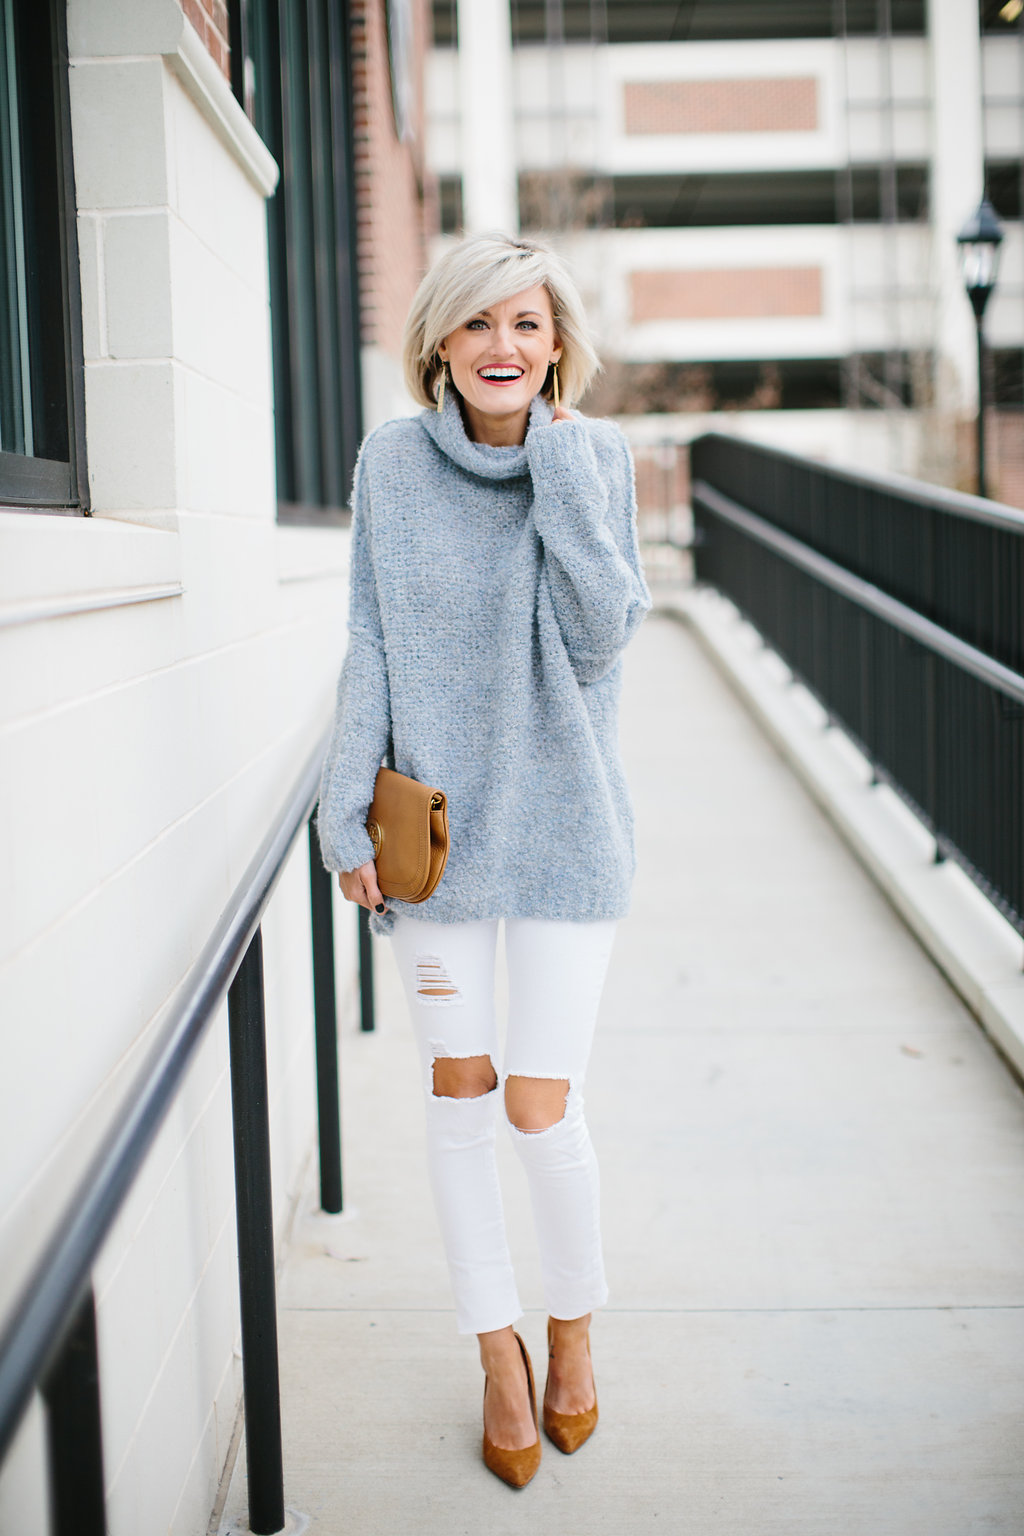 Free People Ice Blue Sweater - Loverly Grey